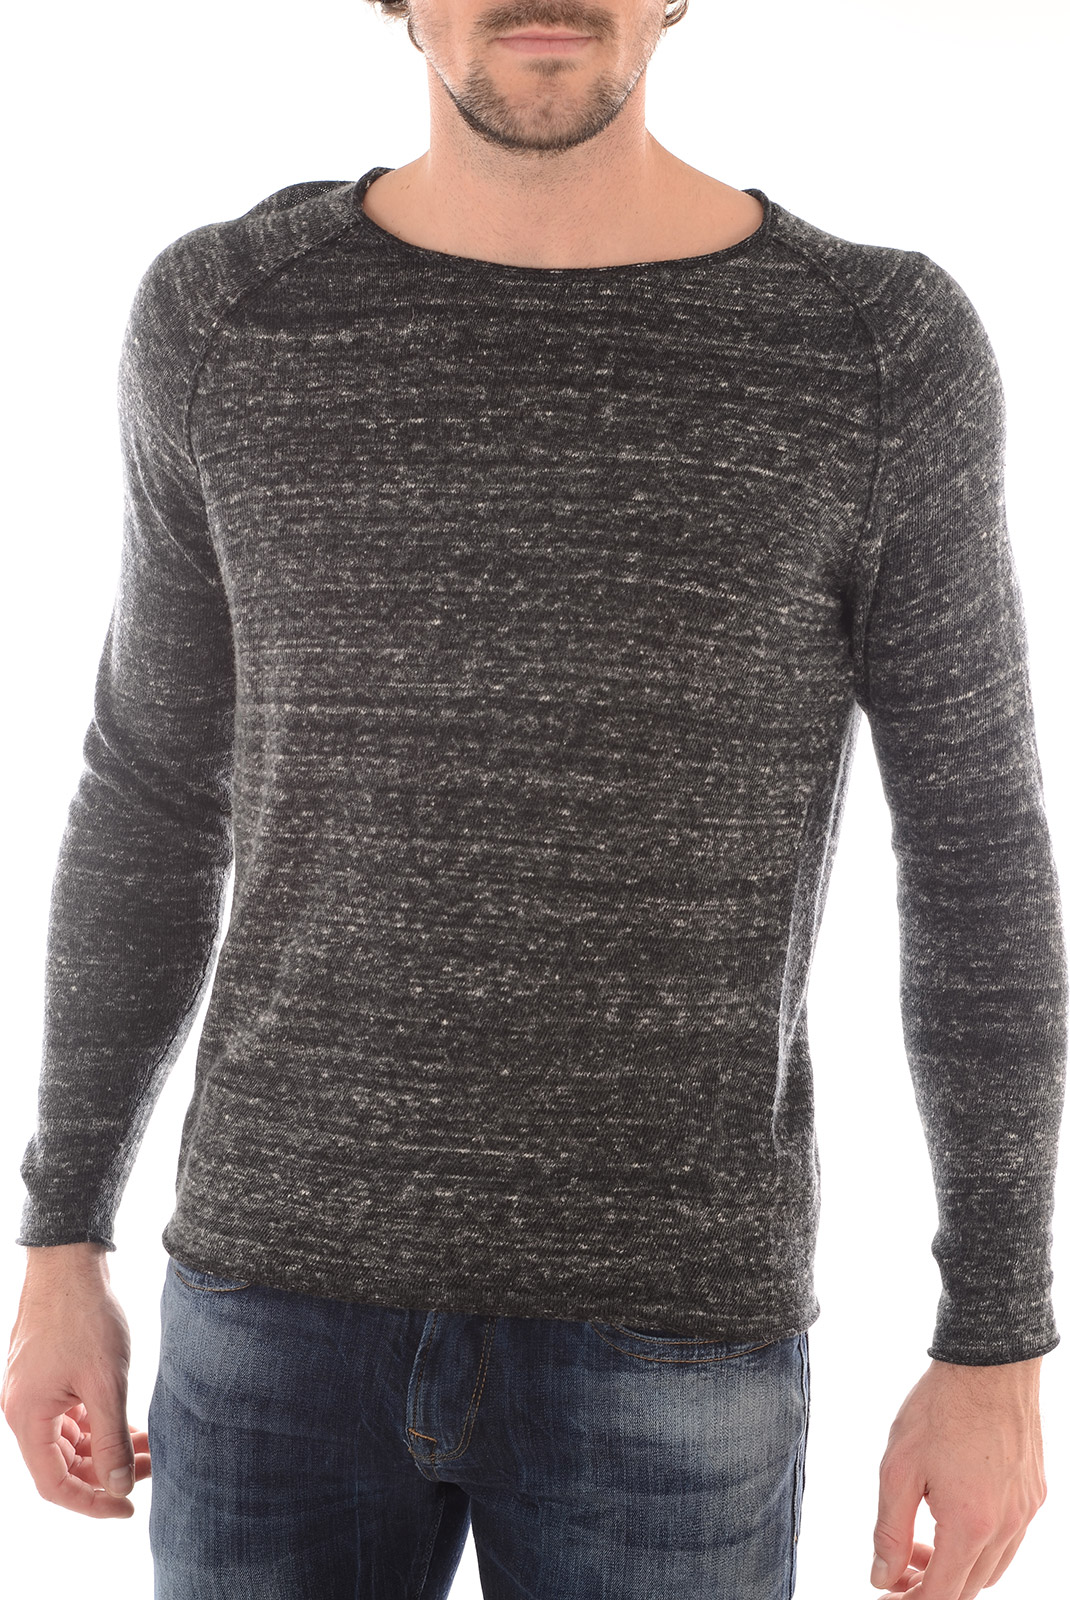 Pulls  Selected LATE CREW NECK GUNMETAL